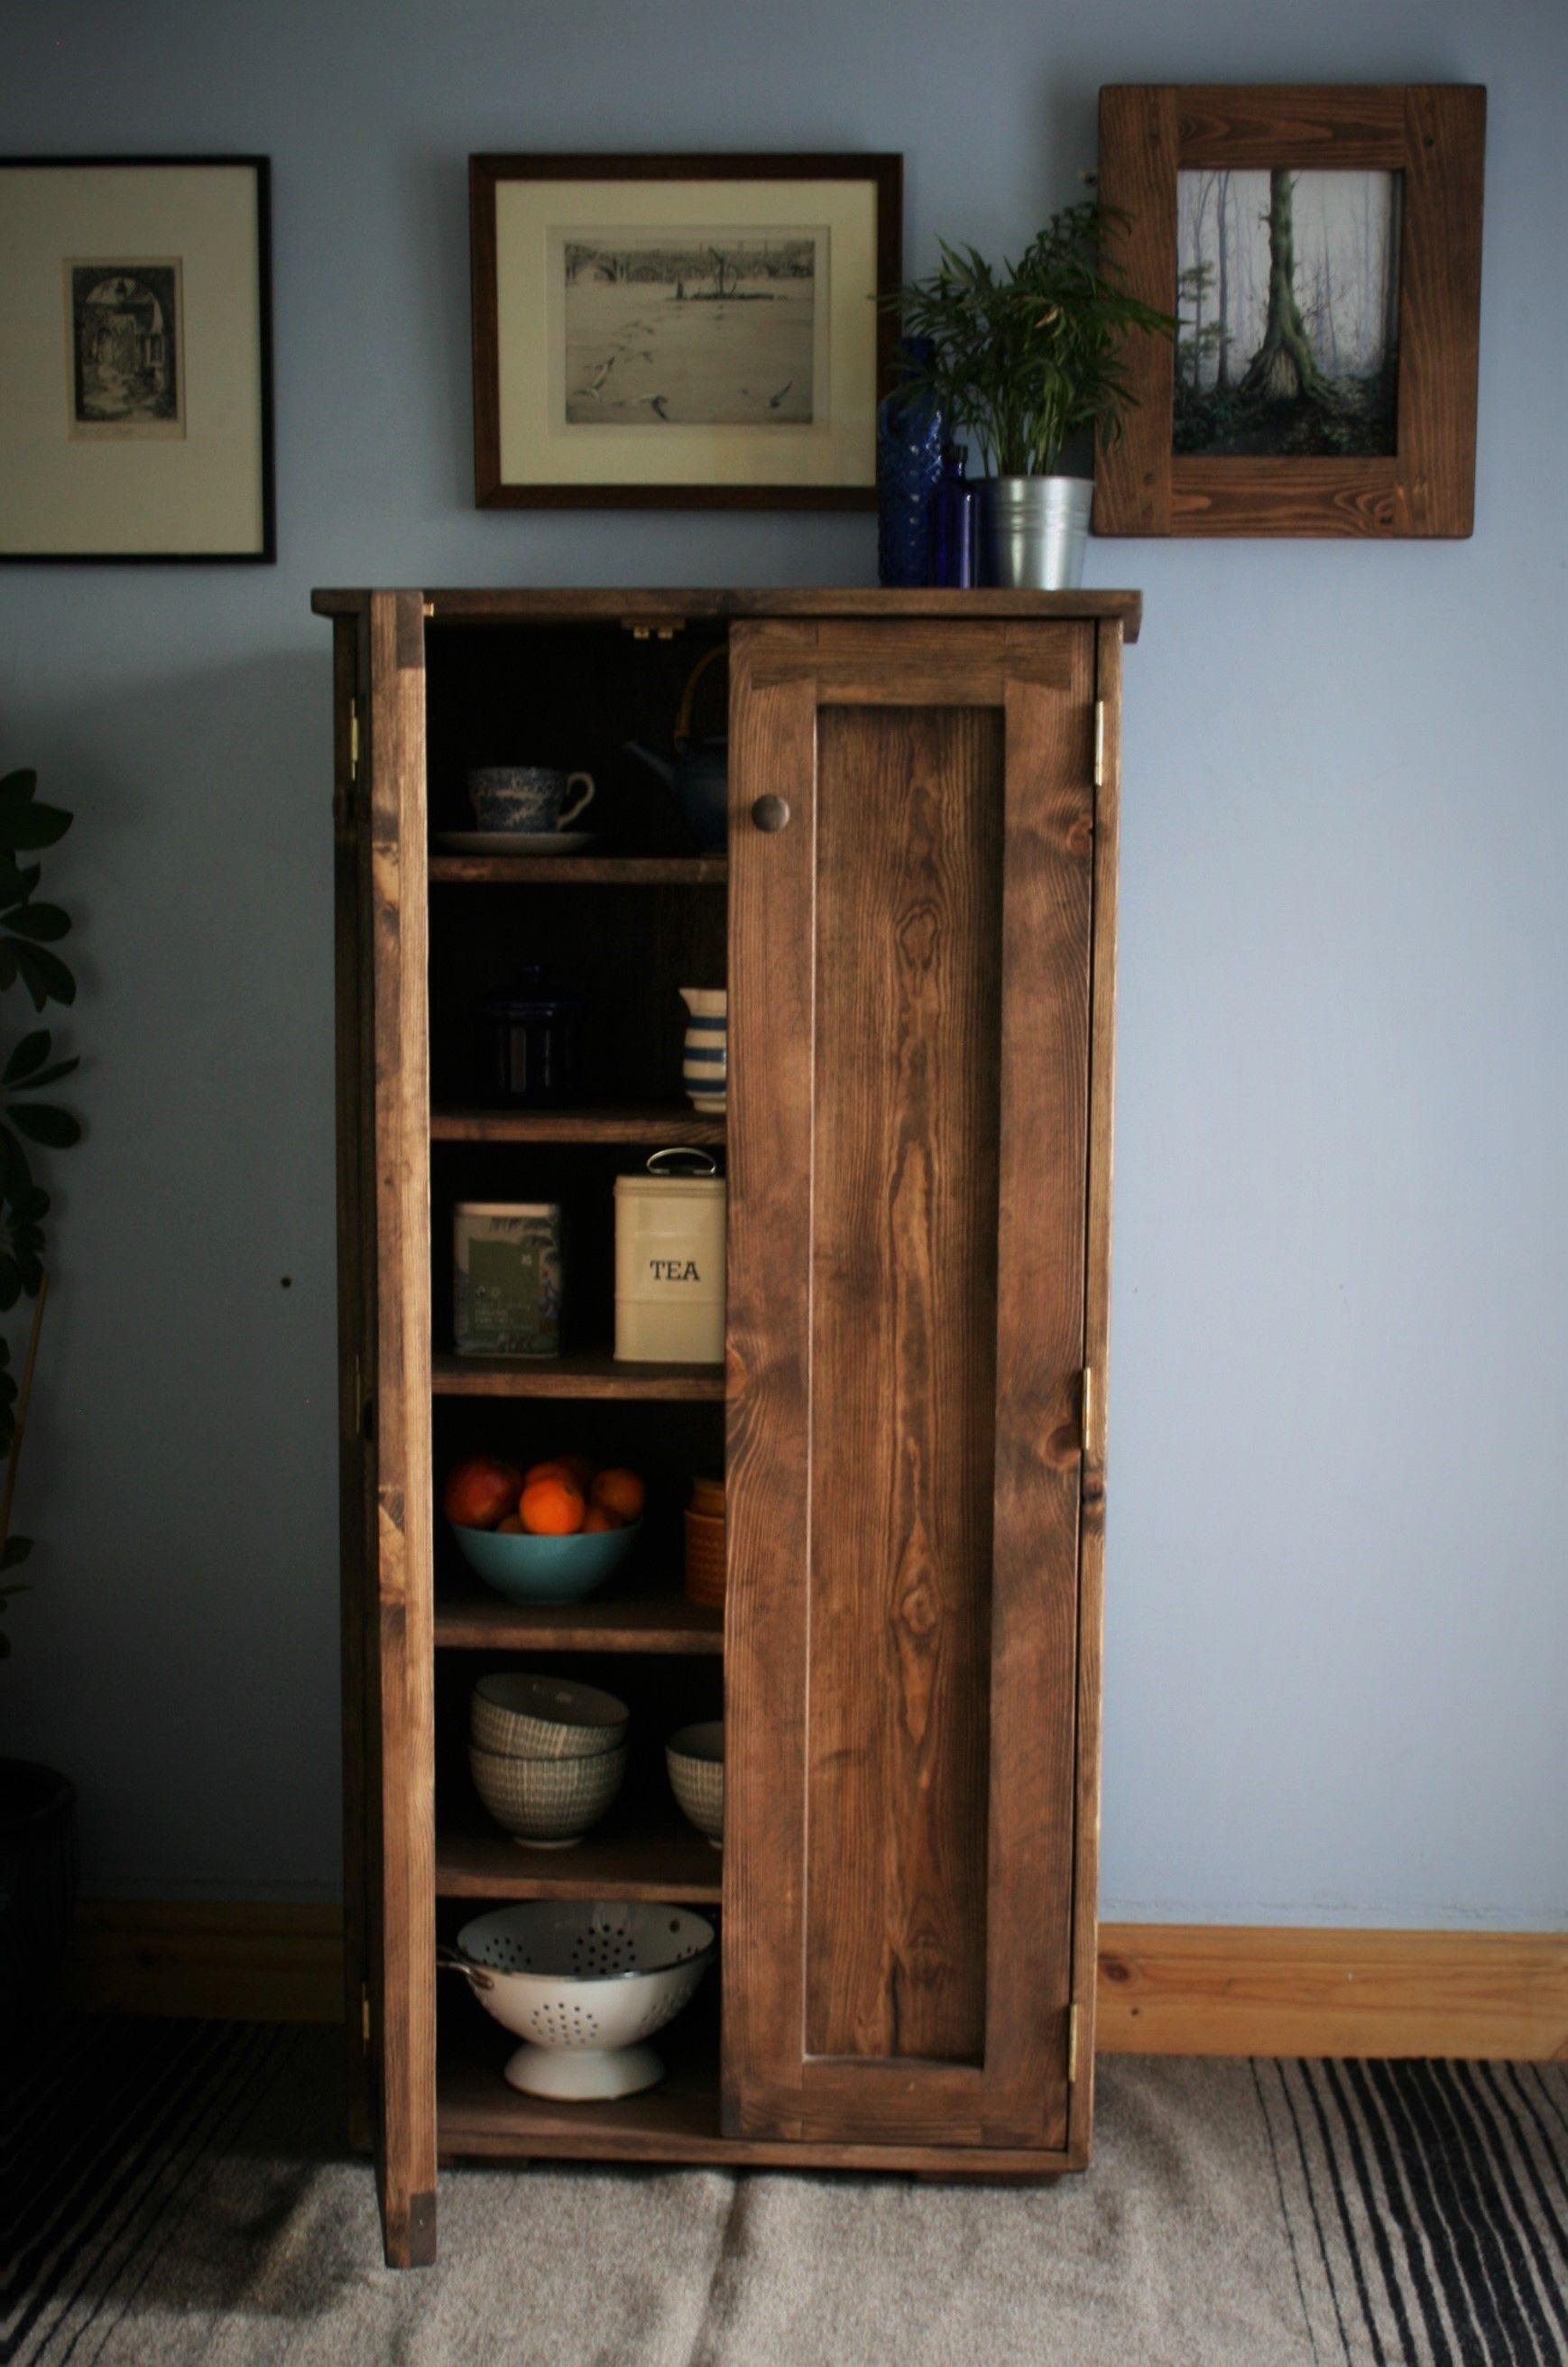 Kitchen Cabinet Pantry Larder Cupboard Dark Wood 6 Shelves Kitchen Storage 130h X 65w X 35 5d Cm Sustainable Natural Wood Somerset Uk Rustic Kitchen Storage Tall Kitchen Cabinets Wooden Storage Cabinet